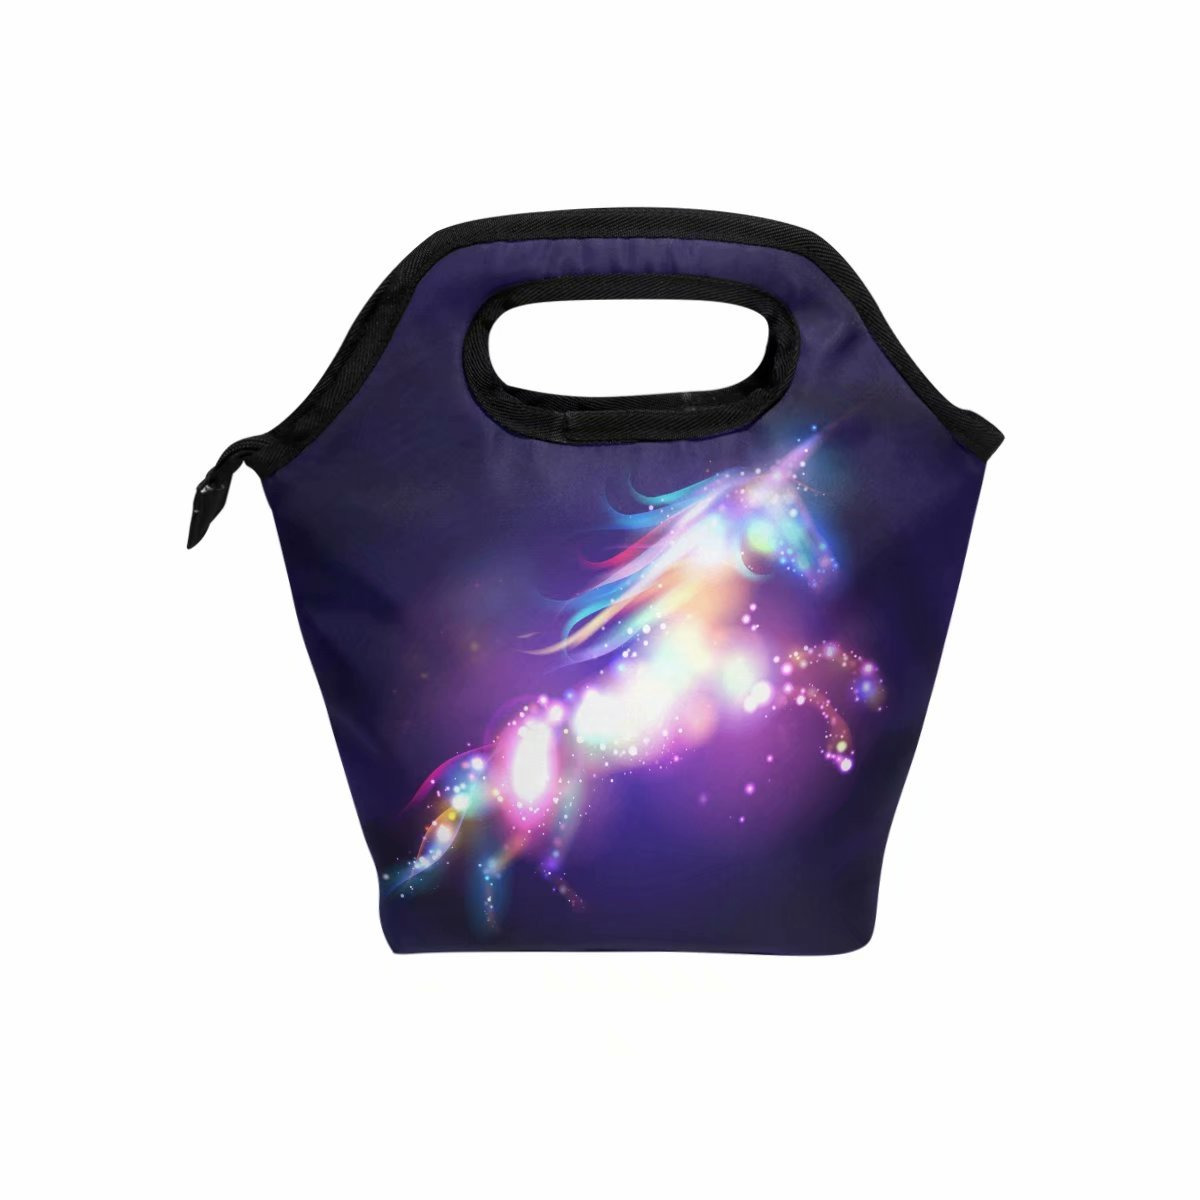 Sloth Lunch Bag Insulated Lunch Box Large Freezable Lunch Boxes Cooler Meal Prep Lunch Tote Follow Your Dreams with Shoulder Strap for Women Boys Girls WHBAG